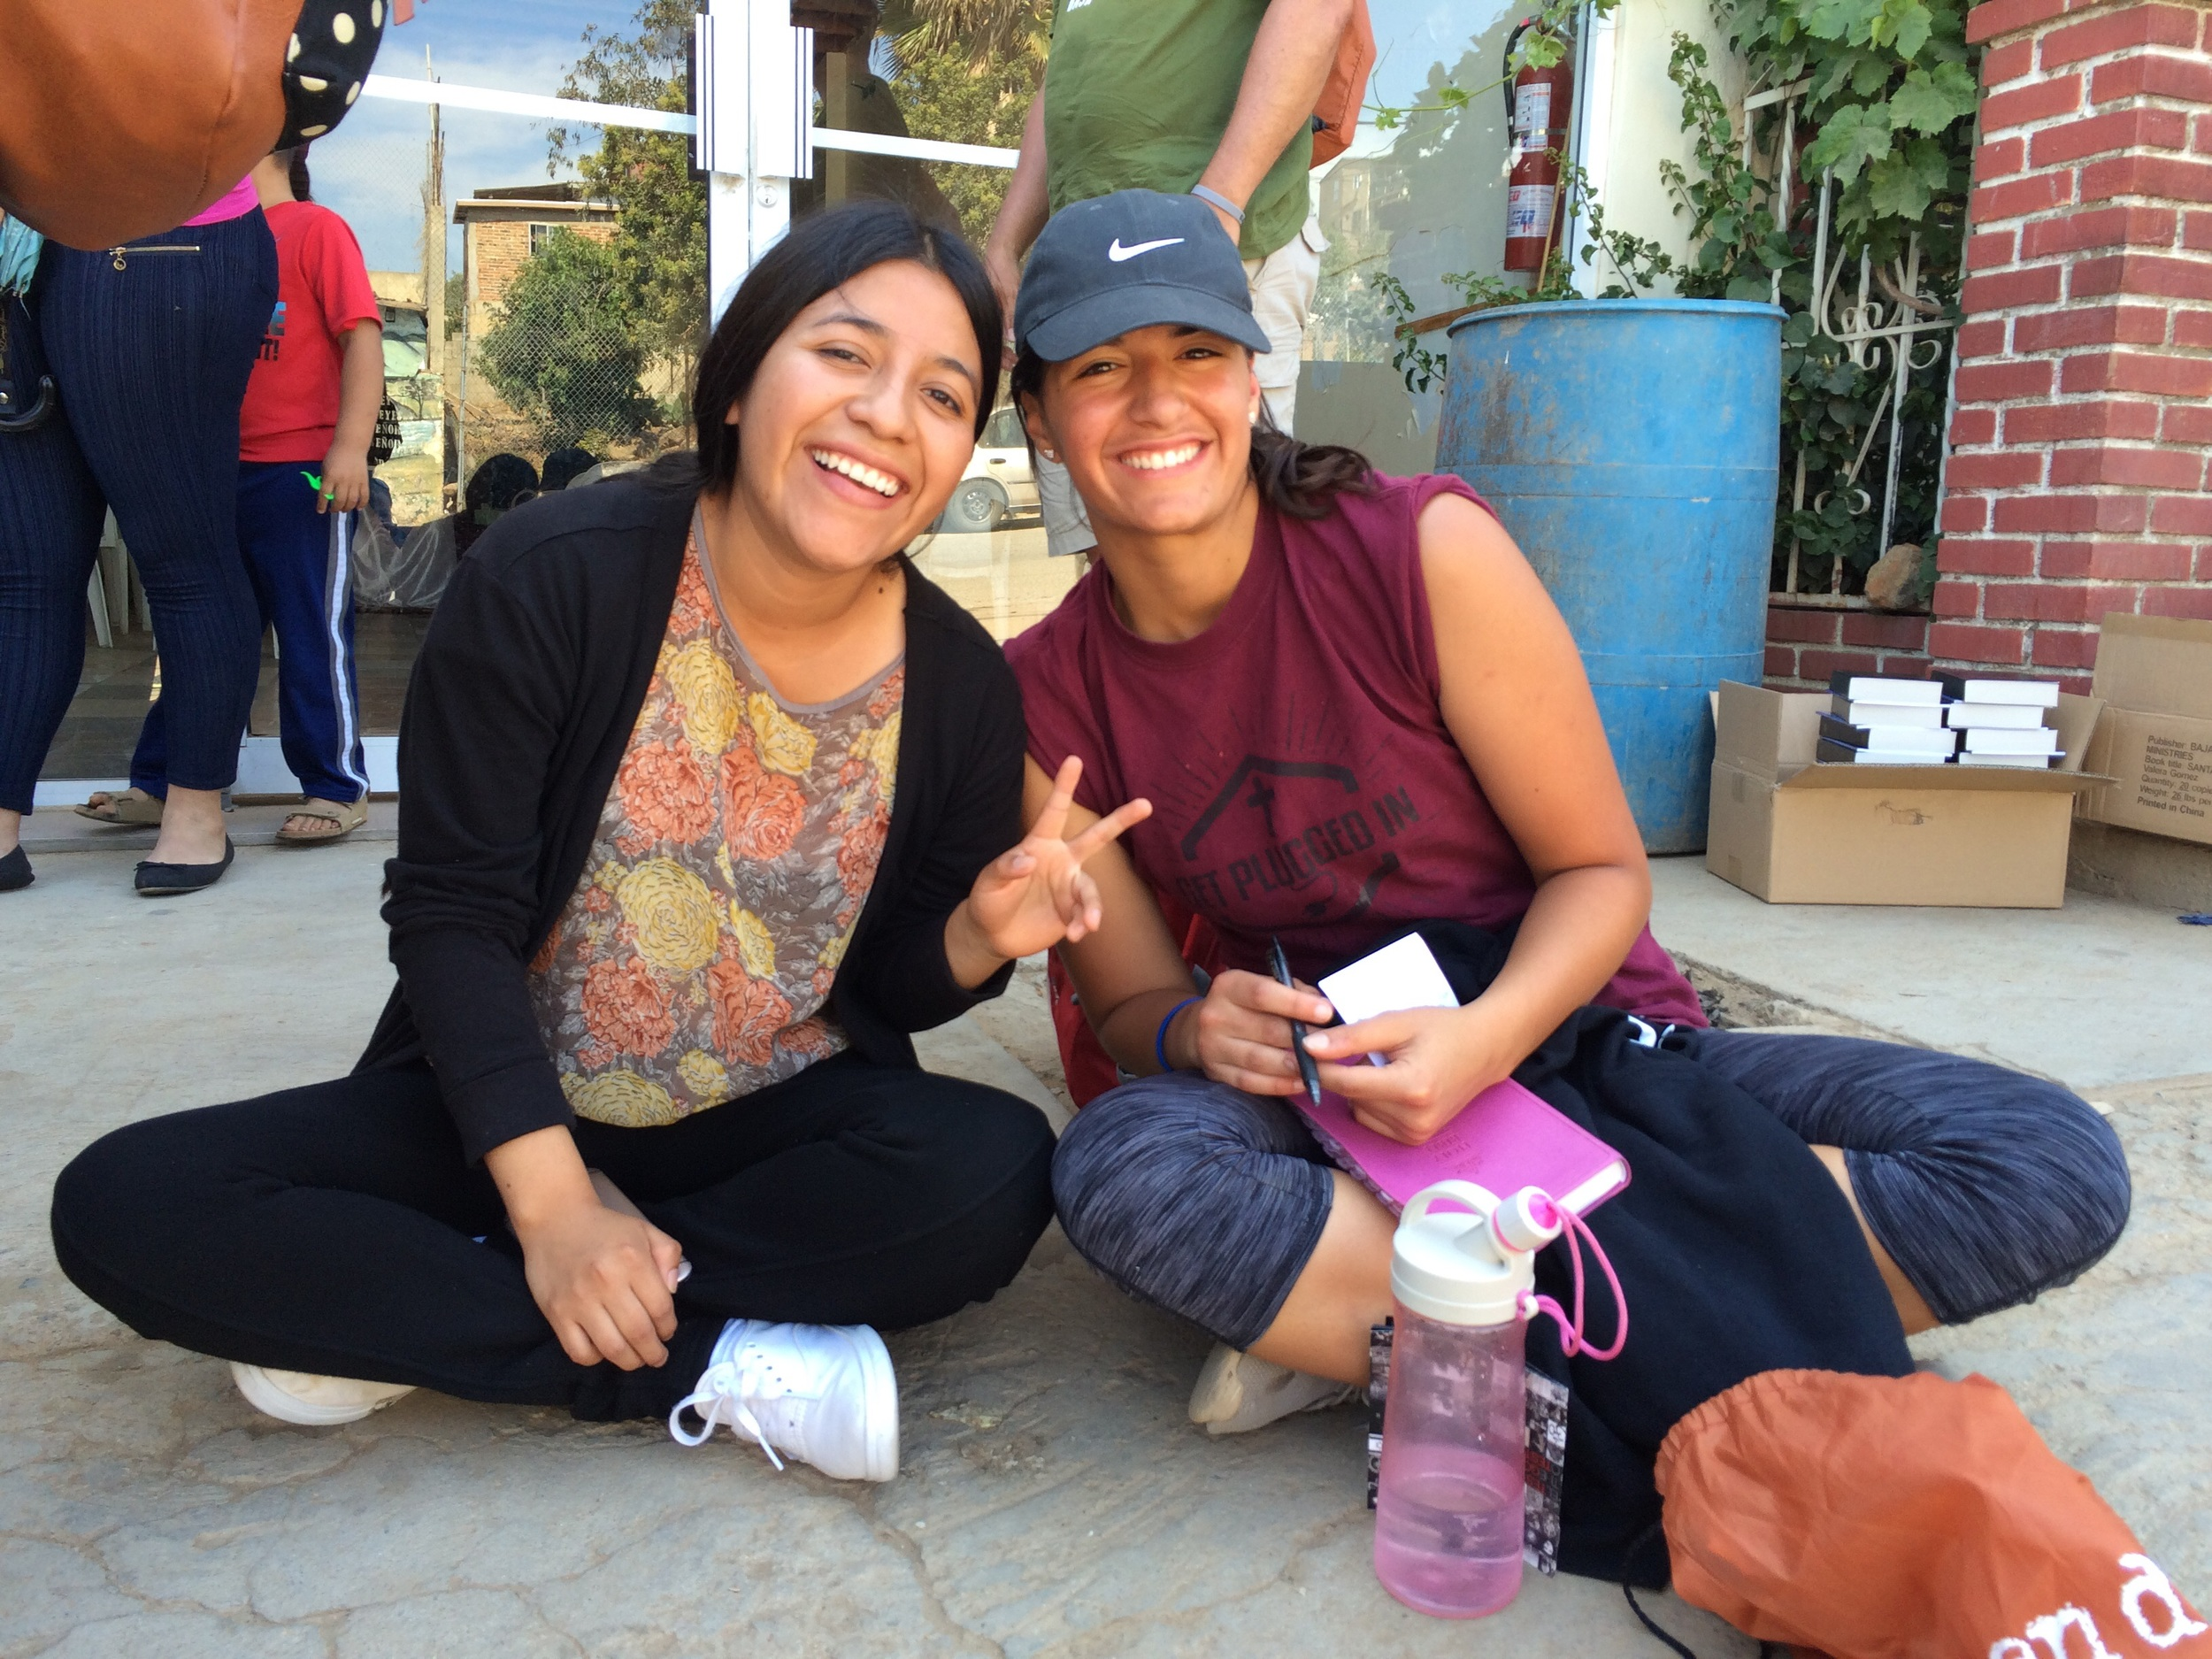 Ornella shared the Gospel with this young lady